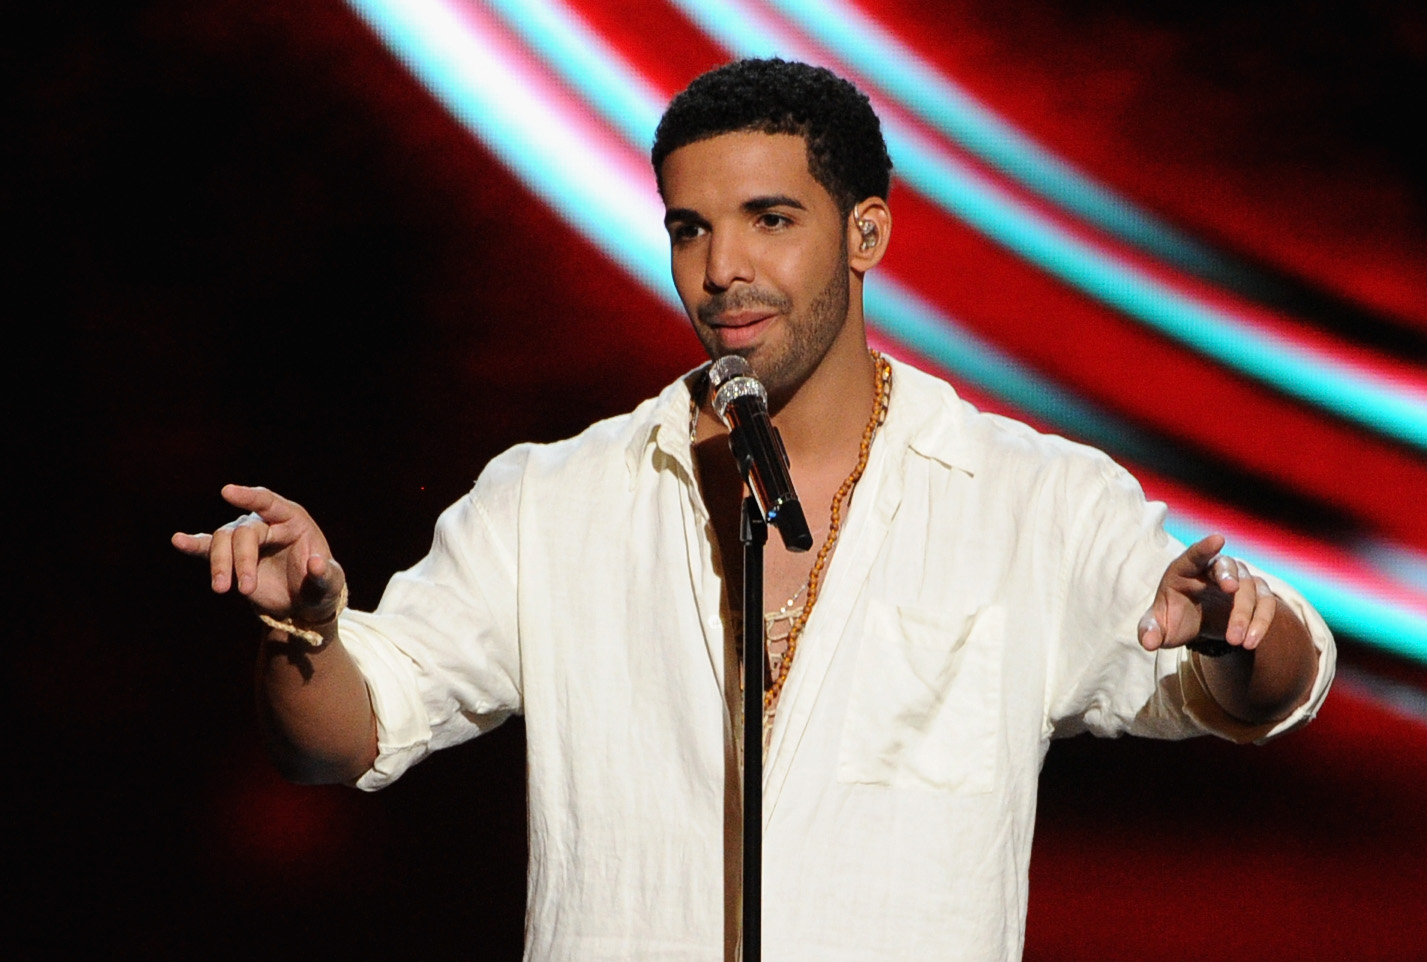 LOS ANGELES, CA - JULY 16:  Host Drake performs onstage during the 2014 ESPYS at Nokia Theatre L.A. Live on July 16, 2014 in